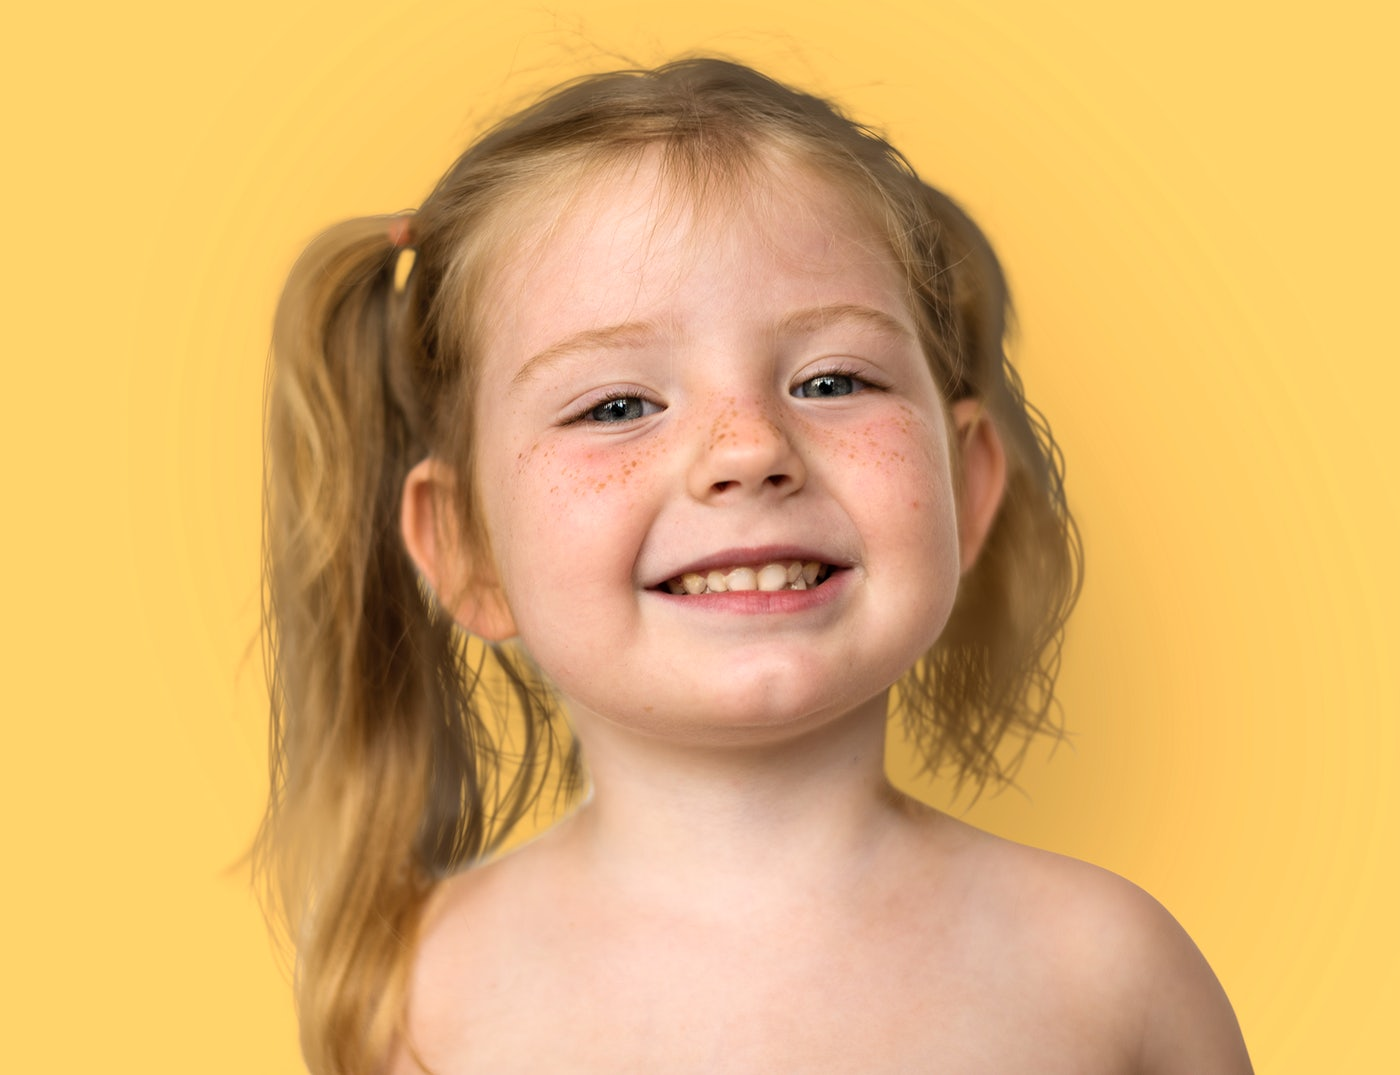 Caucasian Little Girl Bare Chested Smiling | Royalty free